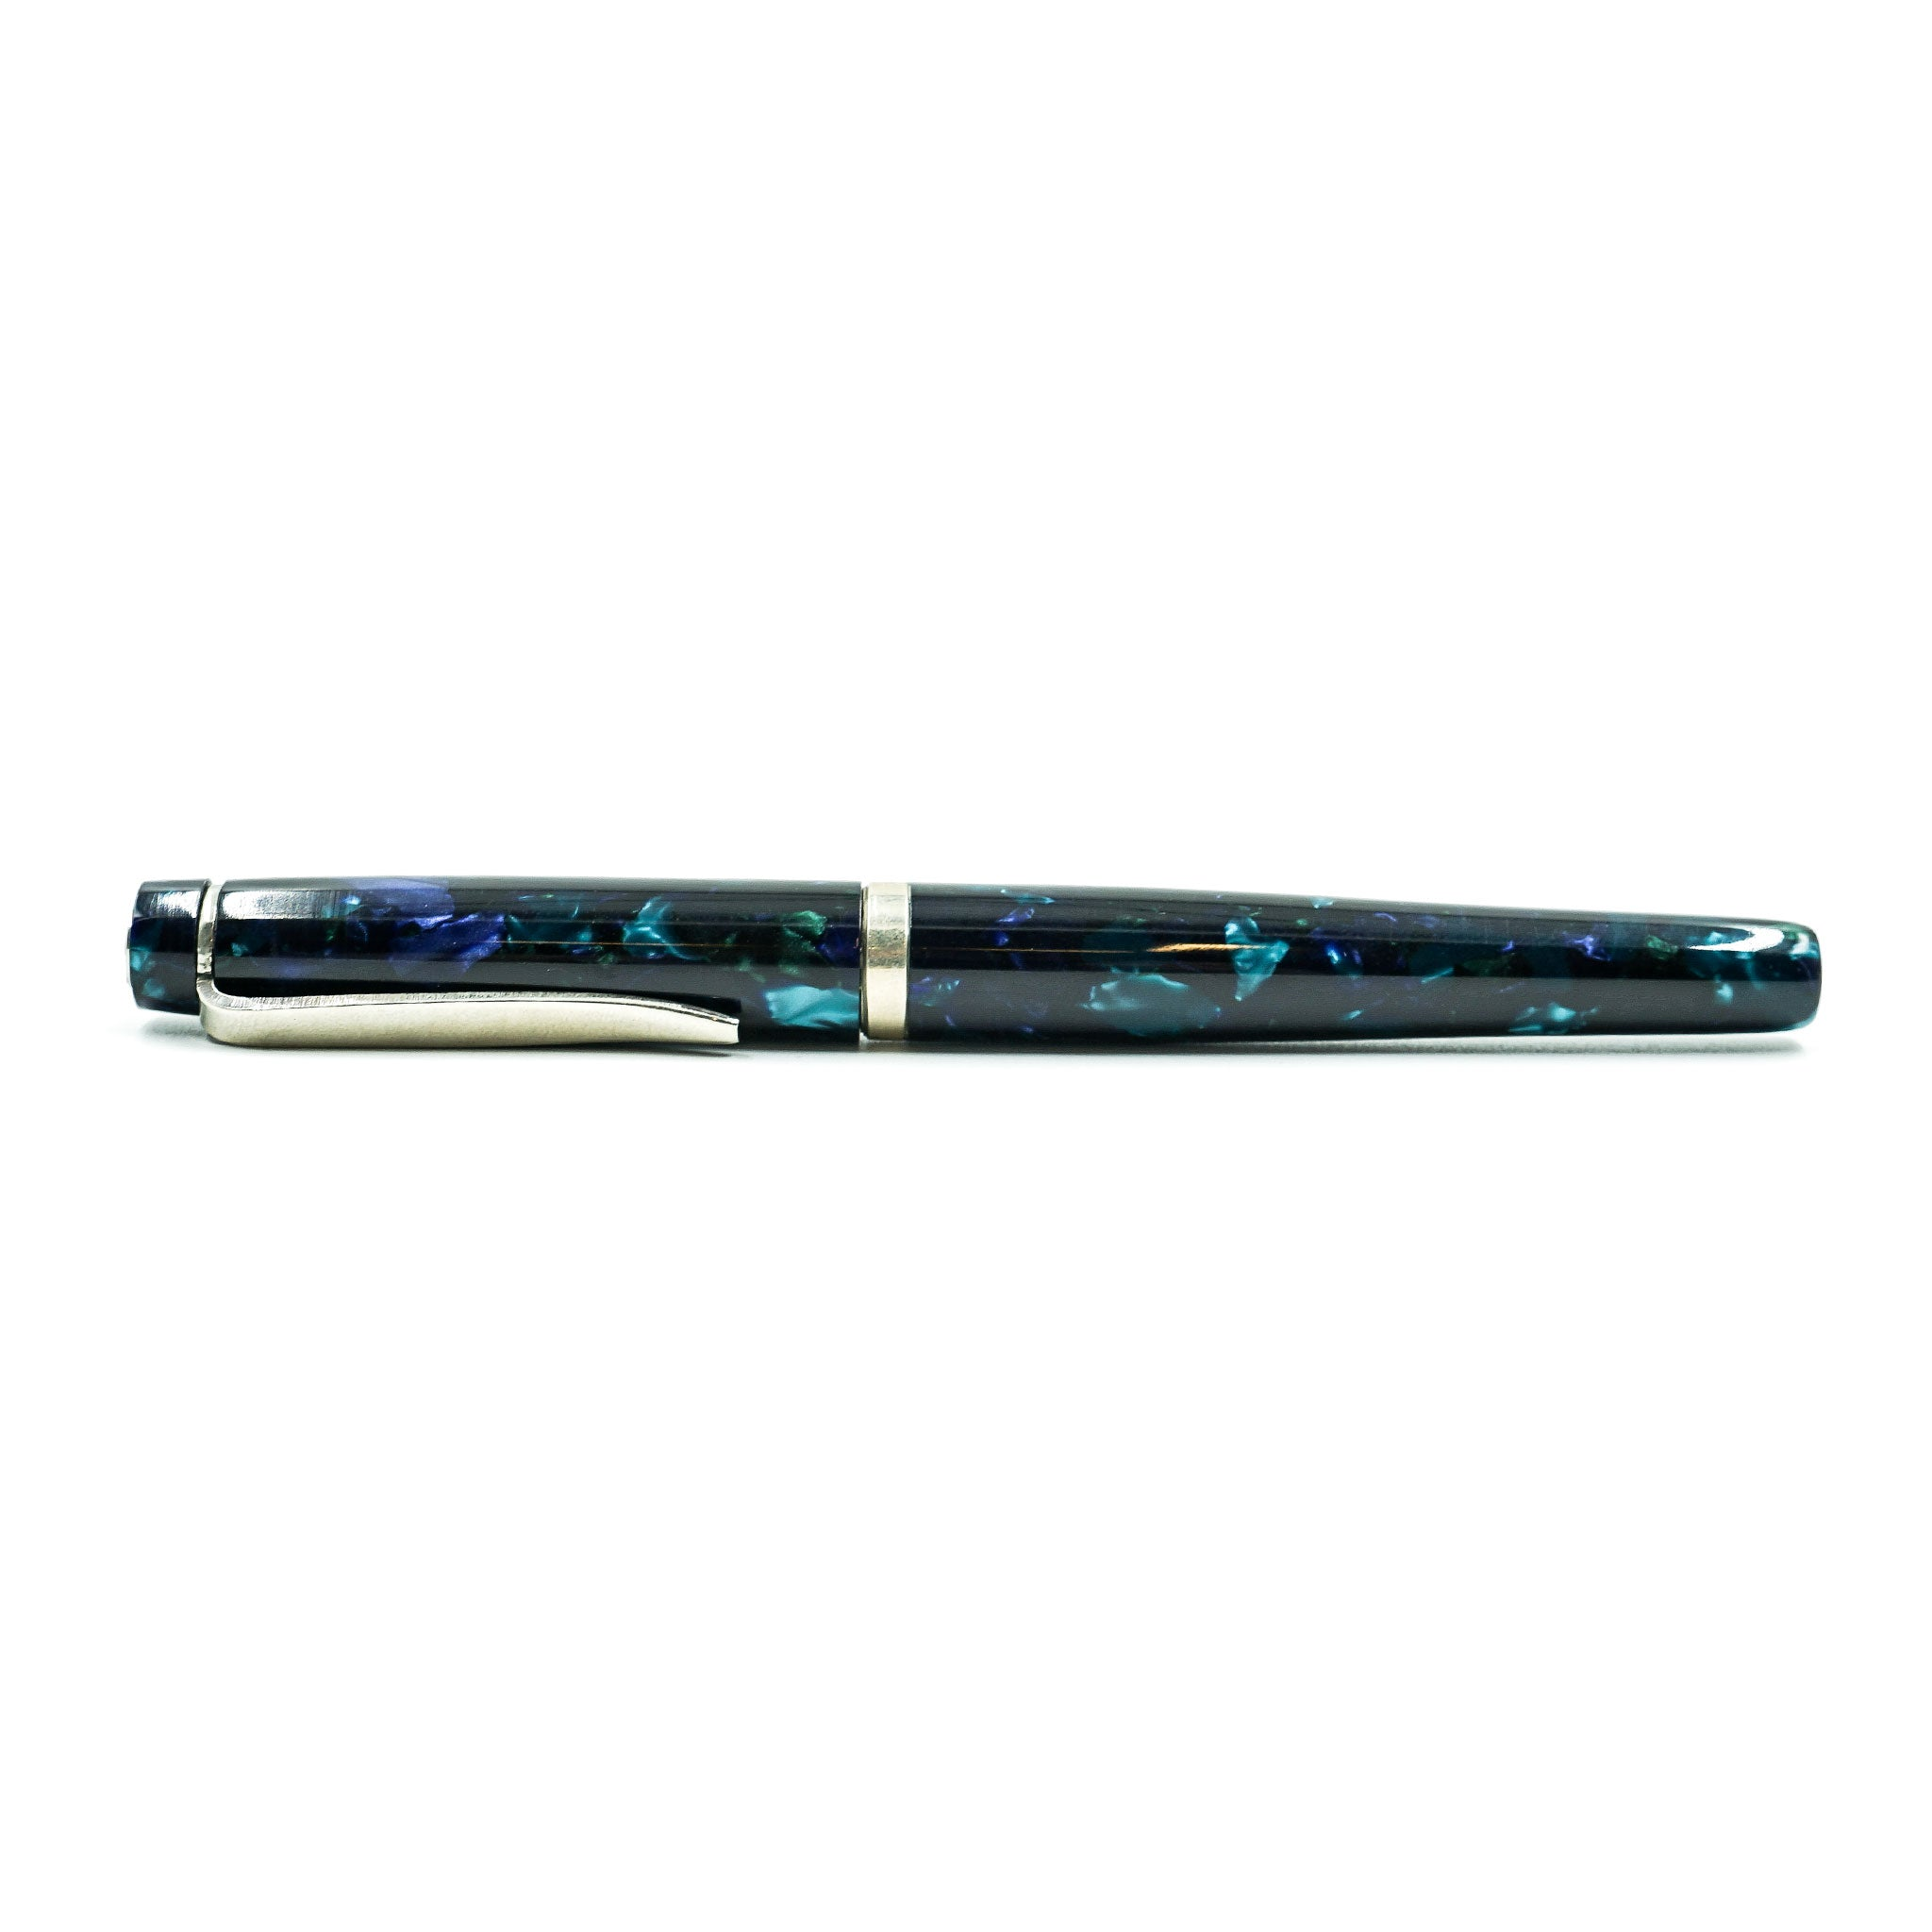 Jewel of Poseidon Ceboplast Pen